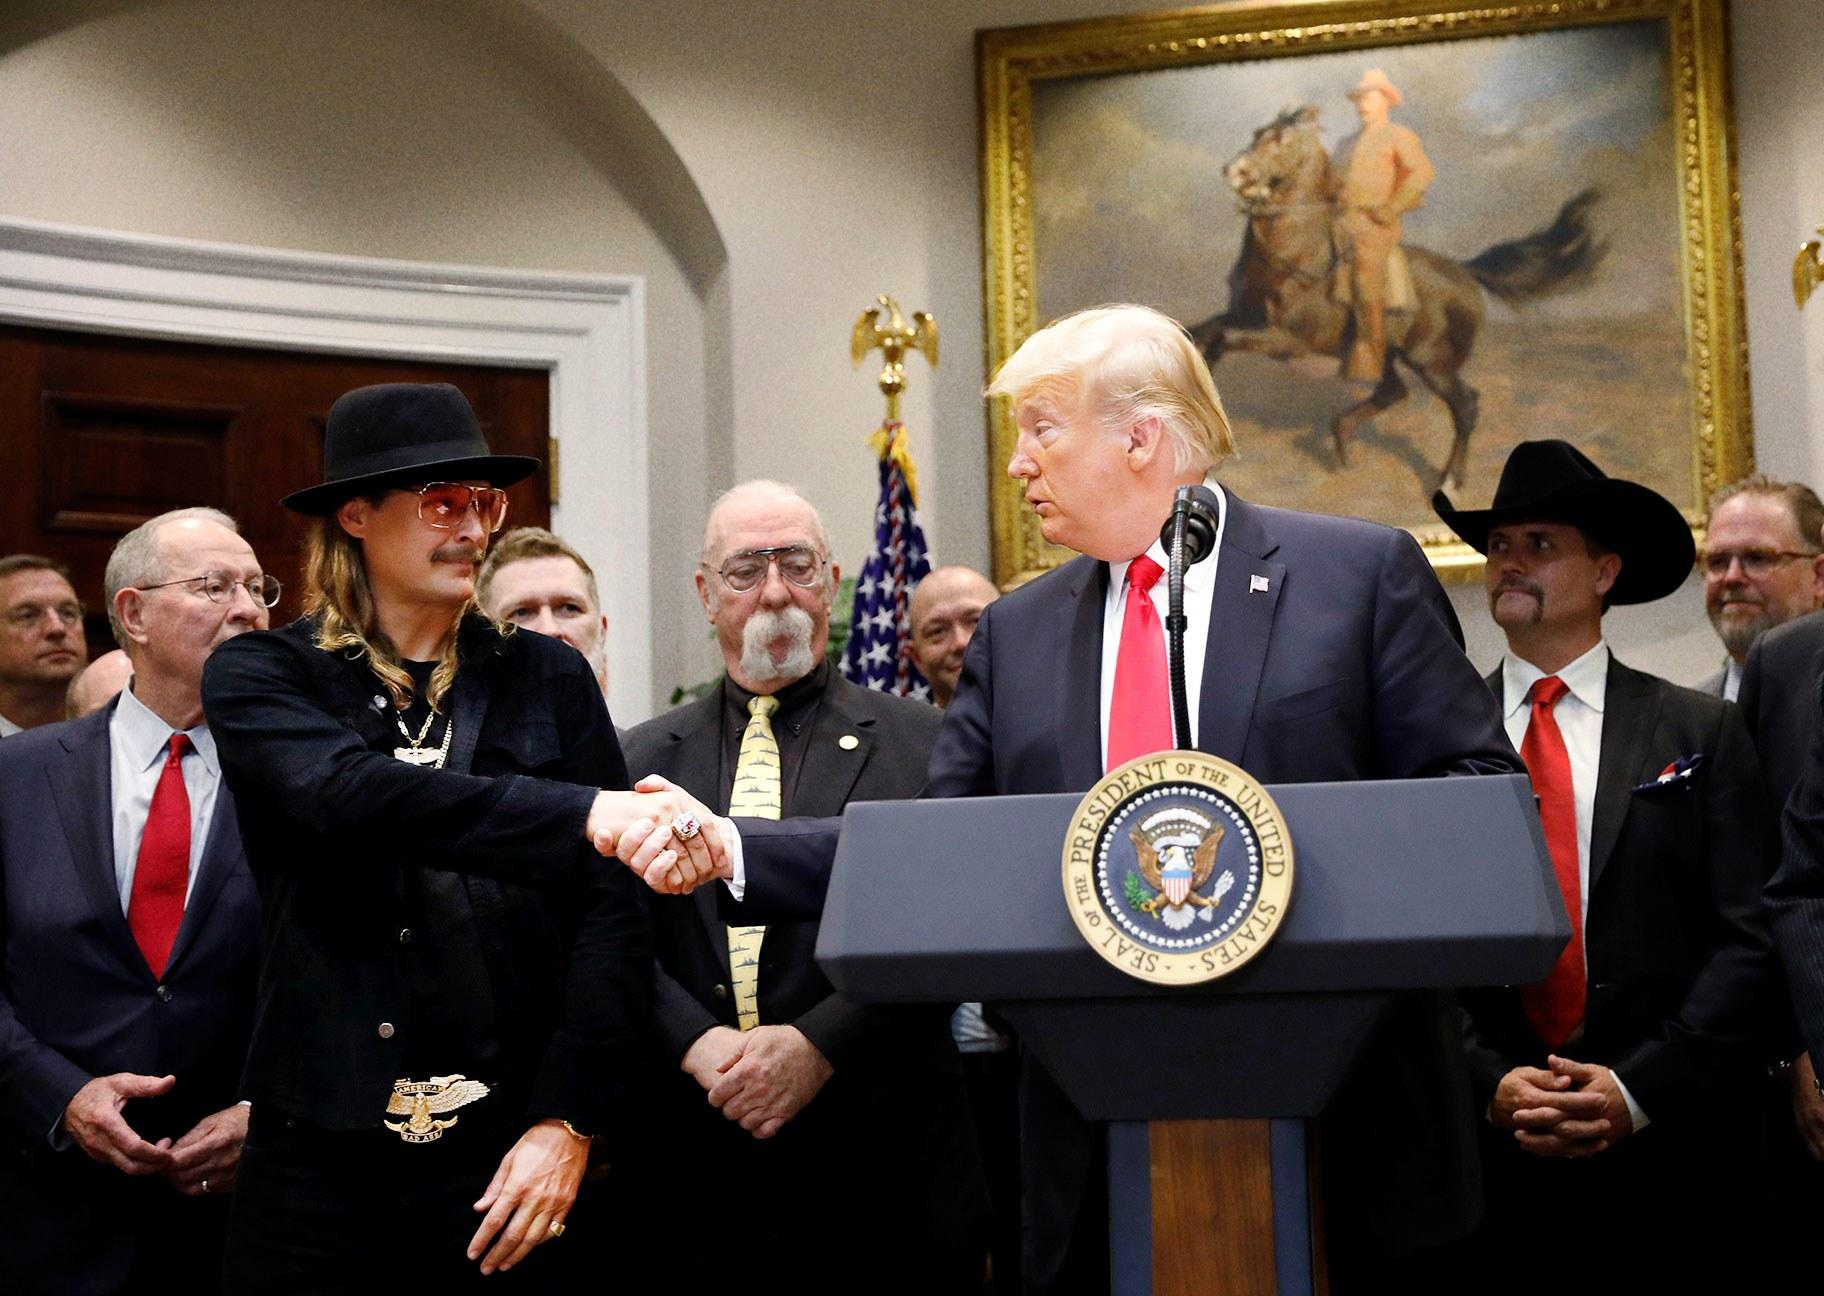 Kid Rock Visits White House to Rekindle His Relationship With Authority